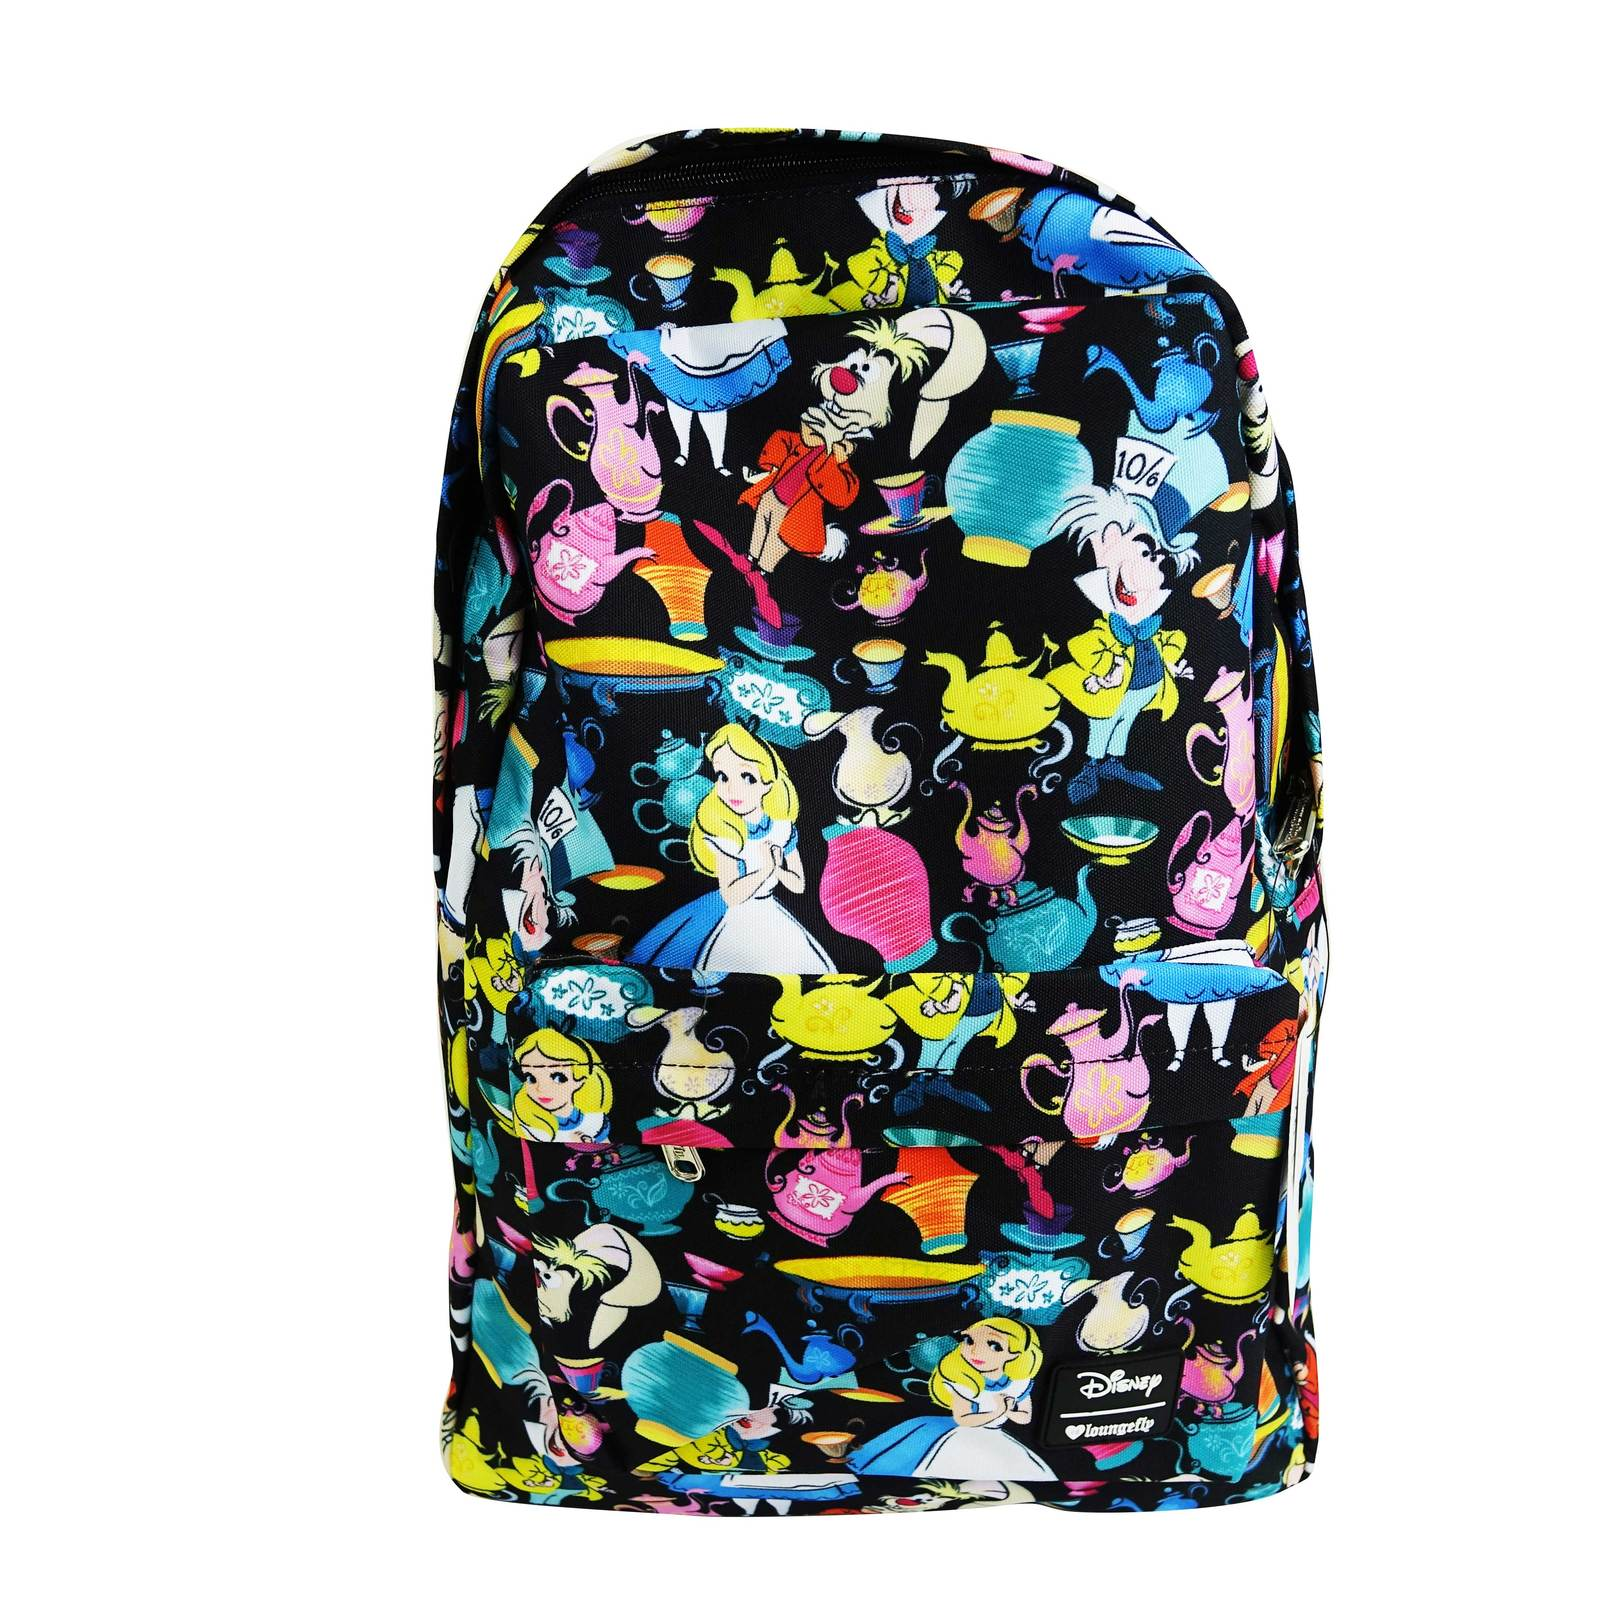 ab3c9a807c Loungefly Disney Alice Black AOP Backpack image ...